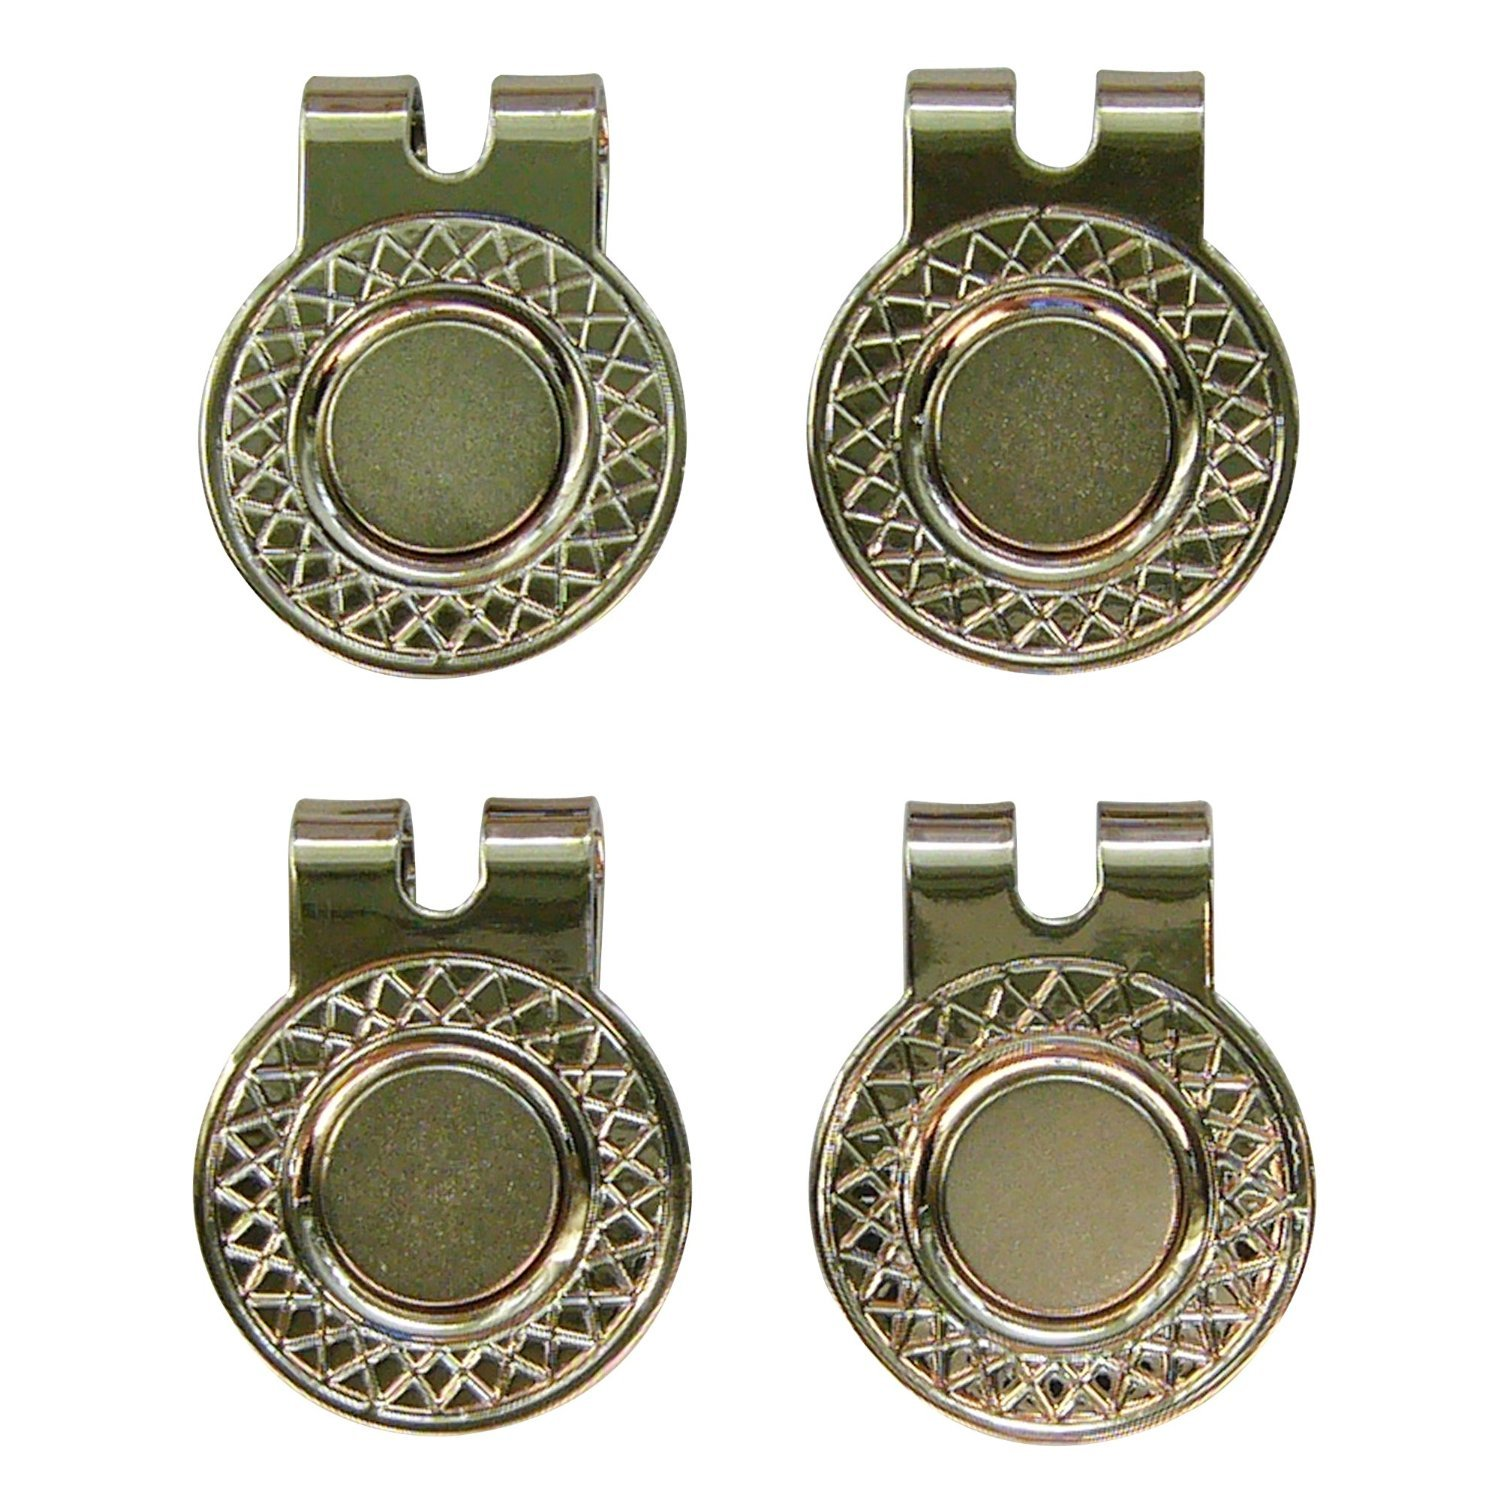 4 Silver Magnetic Hat Clips for Metal Golf Ball Markers (Type #1) by BUSHMANCRAFT (Image #1)